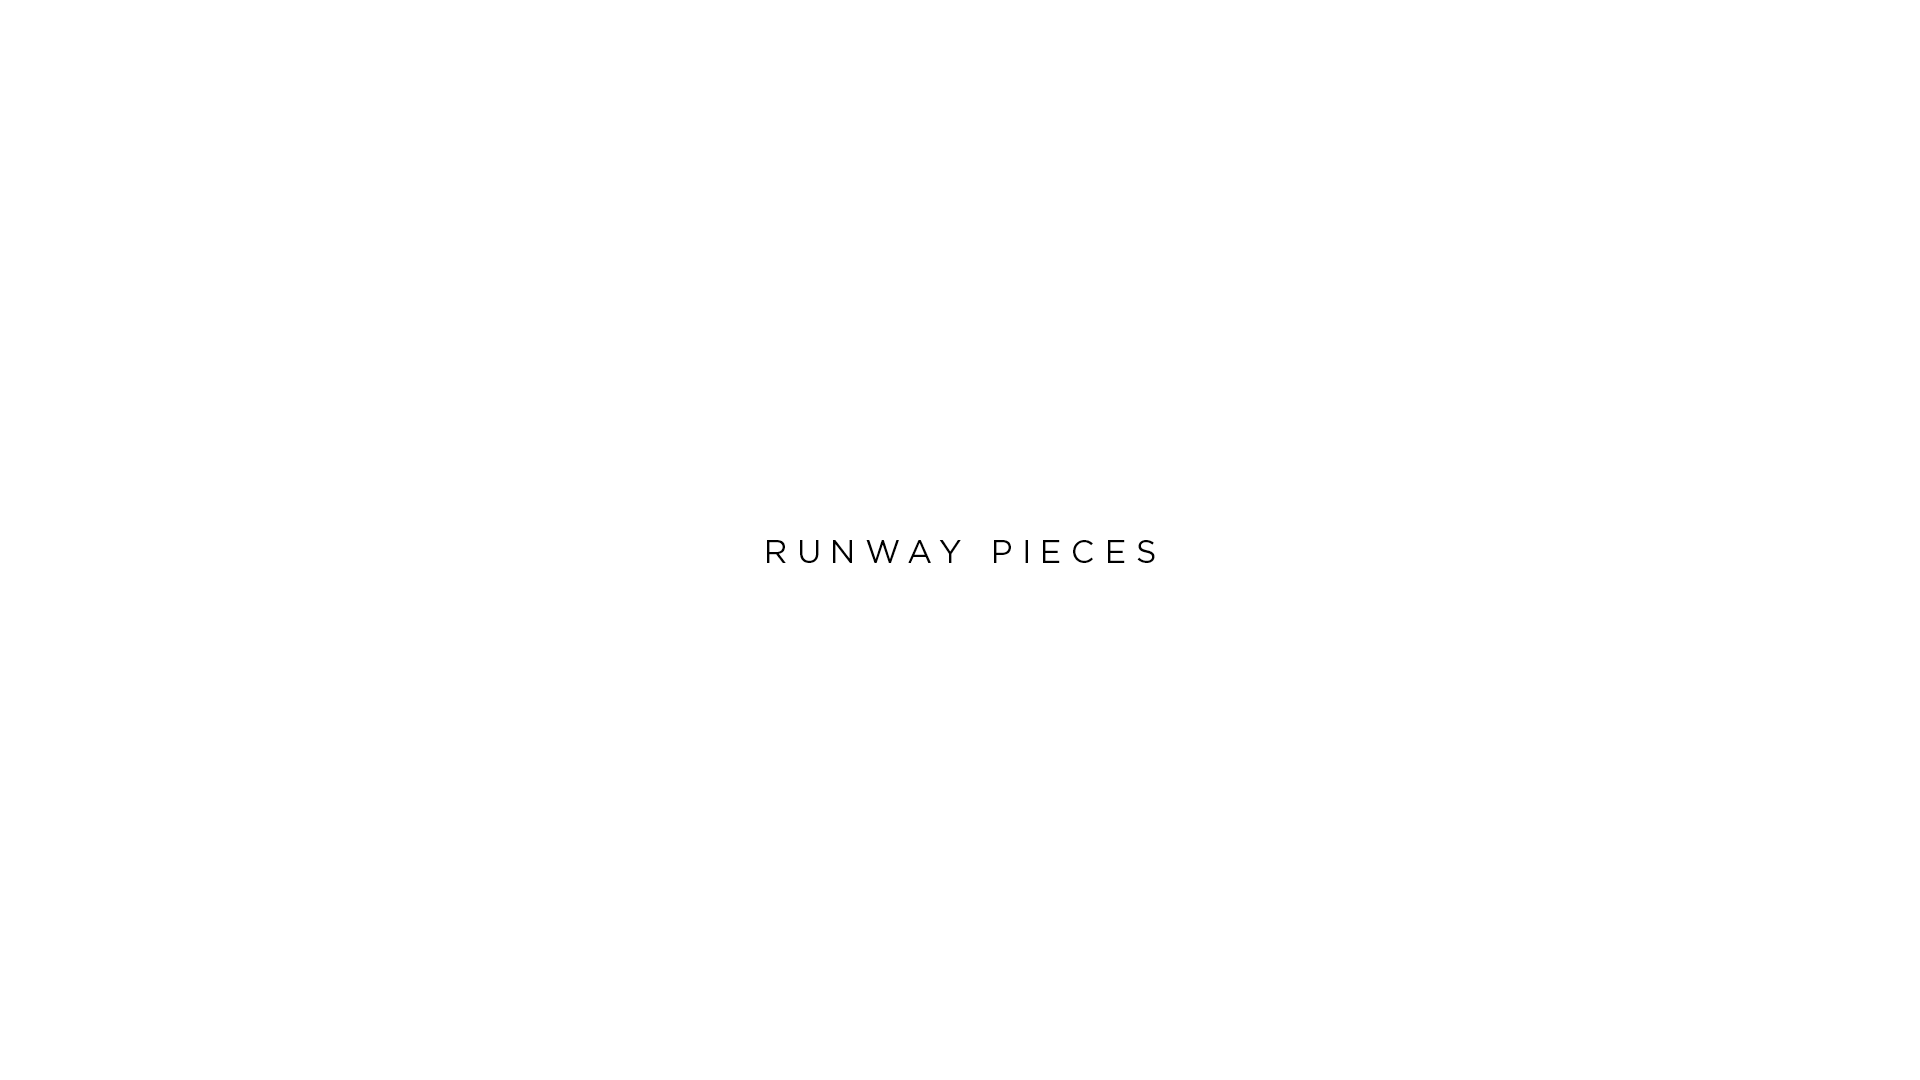 Runway pieces video 2